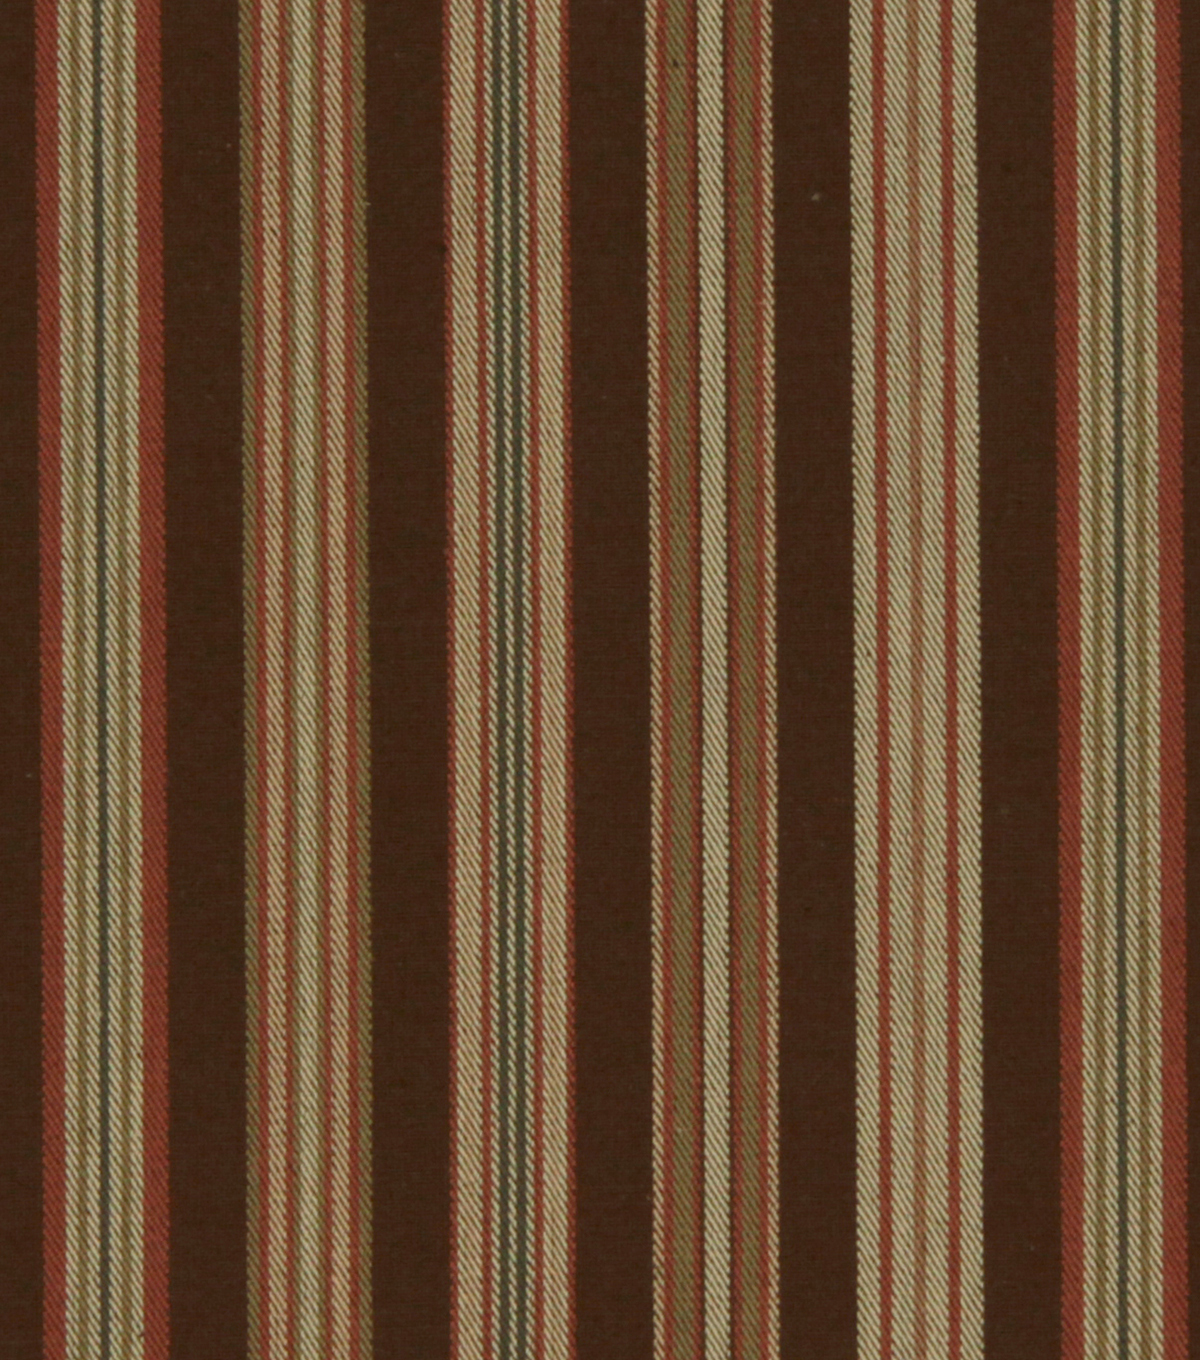 "Home Decor 8""x8"" Fabric Swatch-Robert Allen Dune Stripe Cedar Cove"